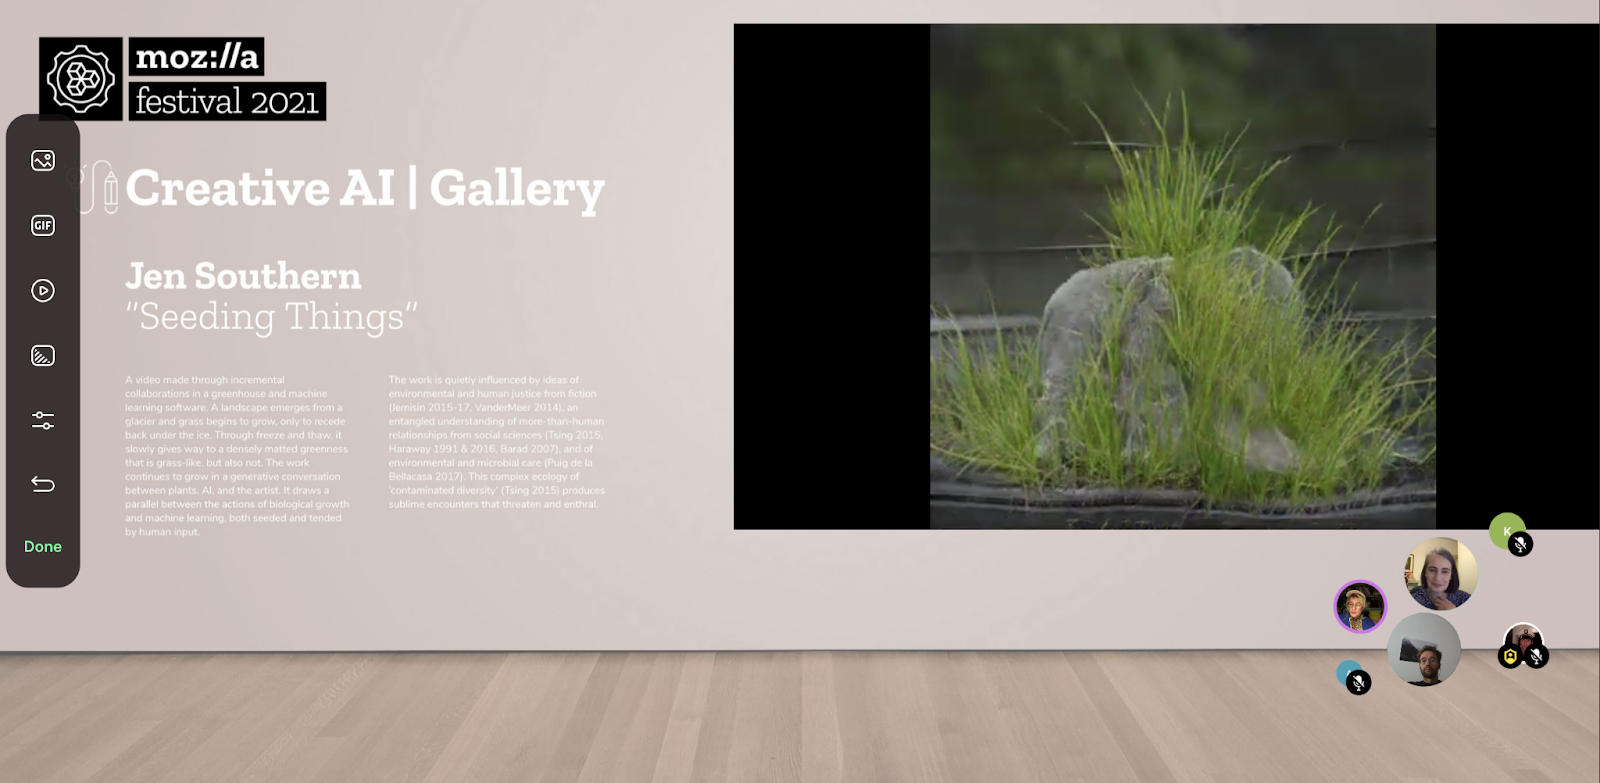 """Screenshot of a virtual room with wood floors and a beige wall that features an image of a plant on the right side. White text on the left side reads """"Creative AI Gallery 